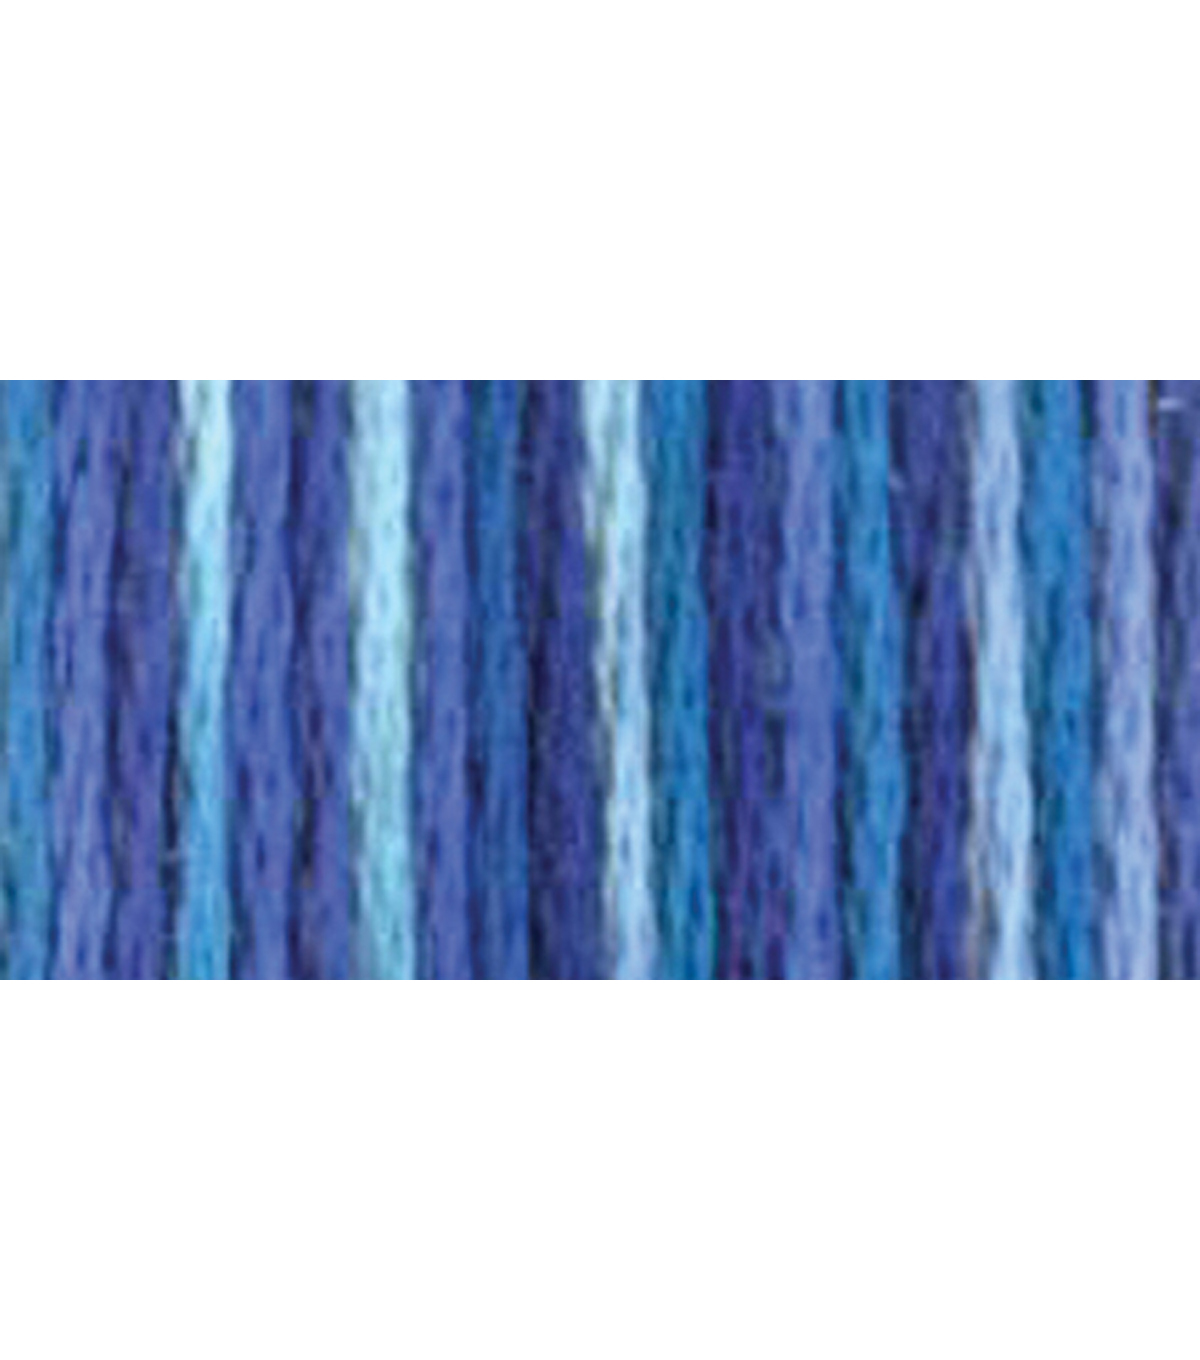 DMC Pearl Cotton Variation Thread 27 Yds Size 5, Laguna Blue